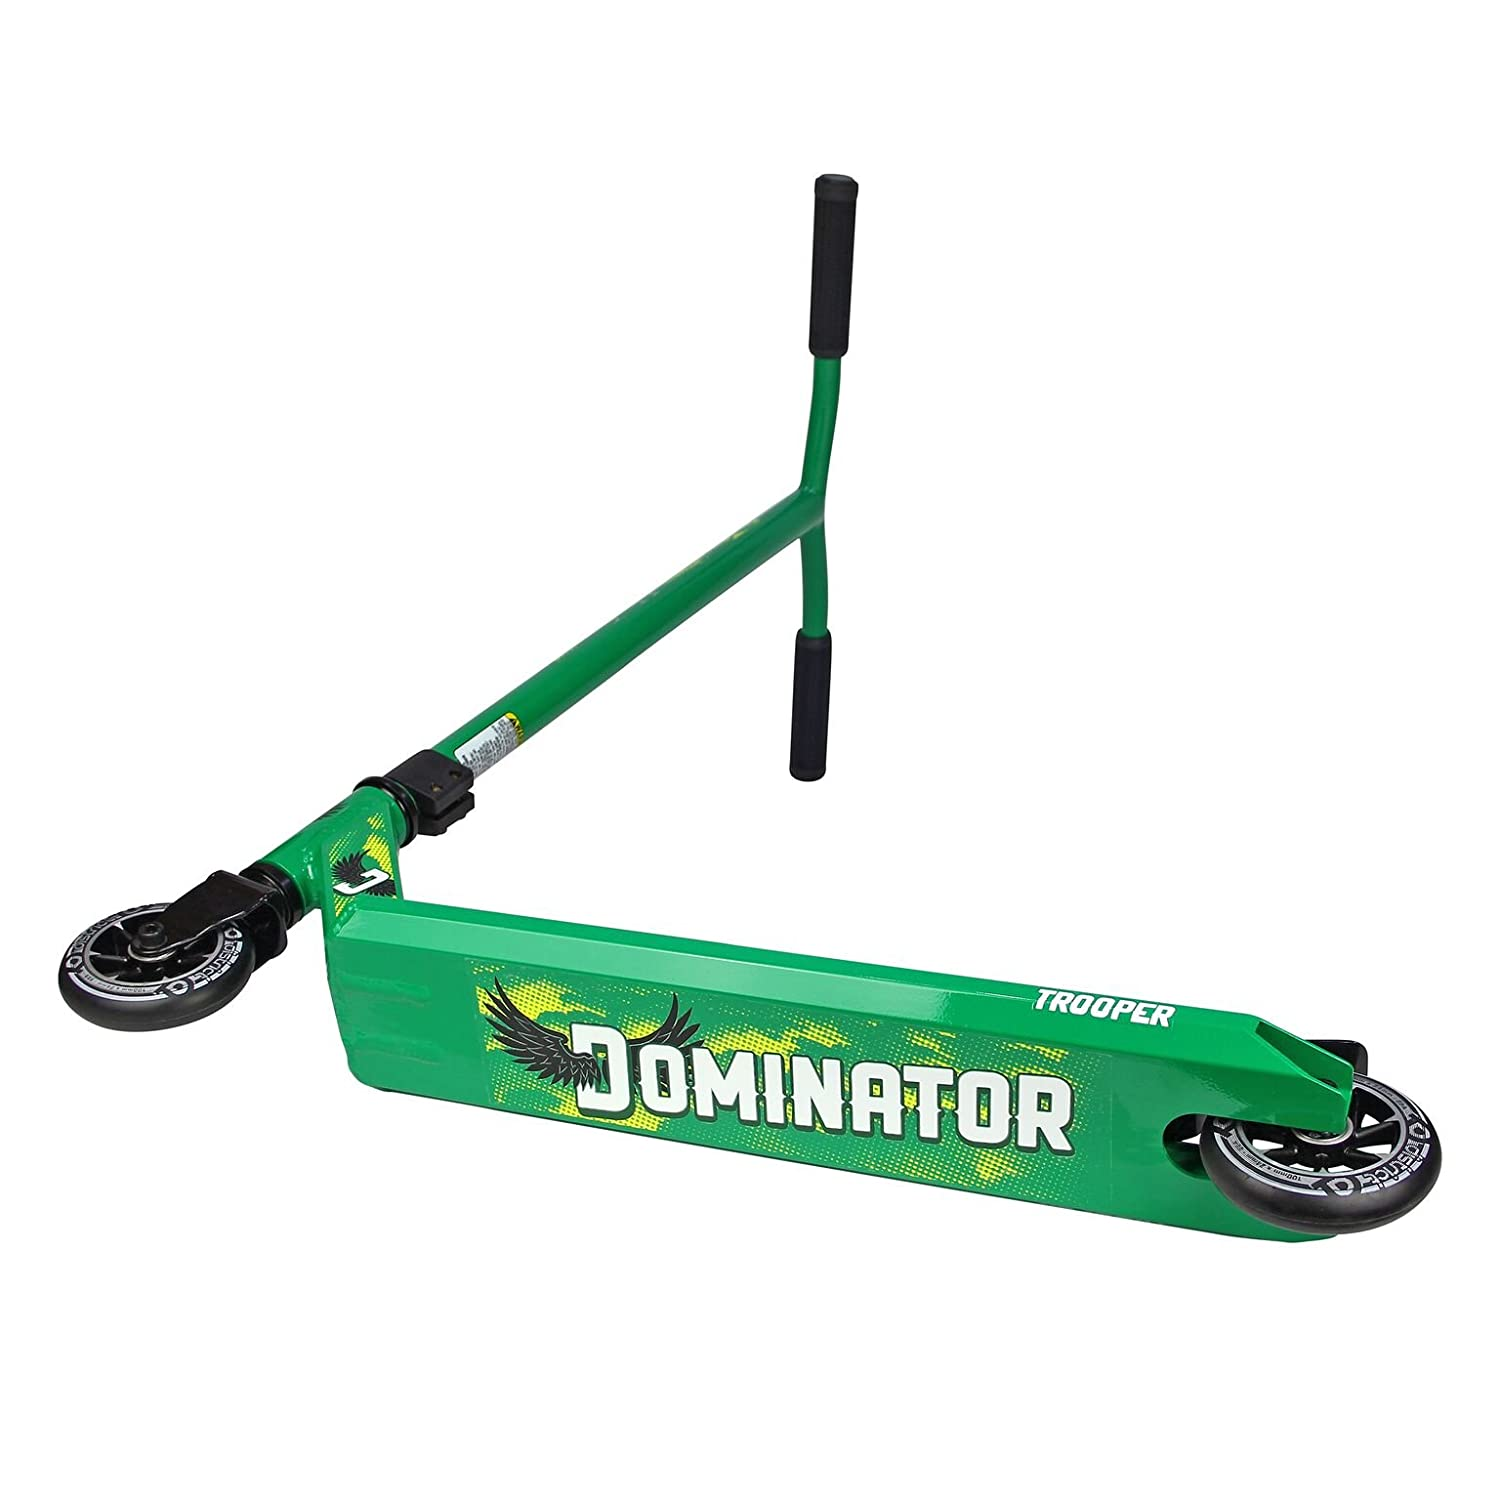 Dominator Trooper scooter freestyle Completo - Varios Colores (Verde / Negro): Amazon.es: Deportes y aire libre